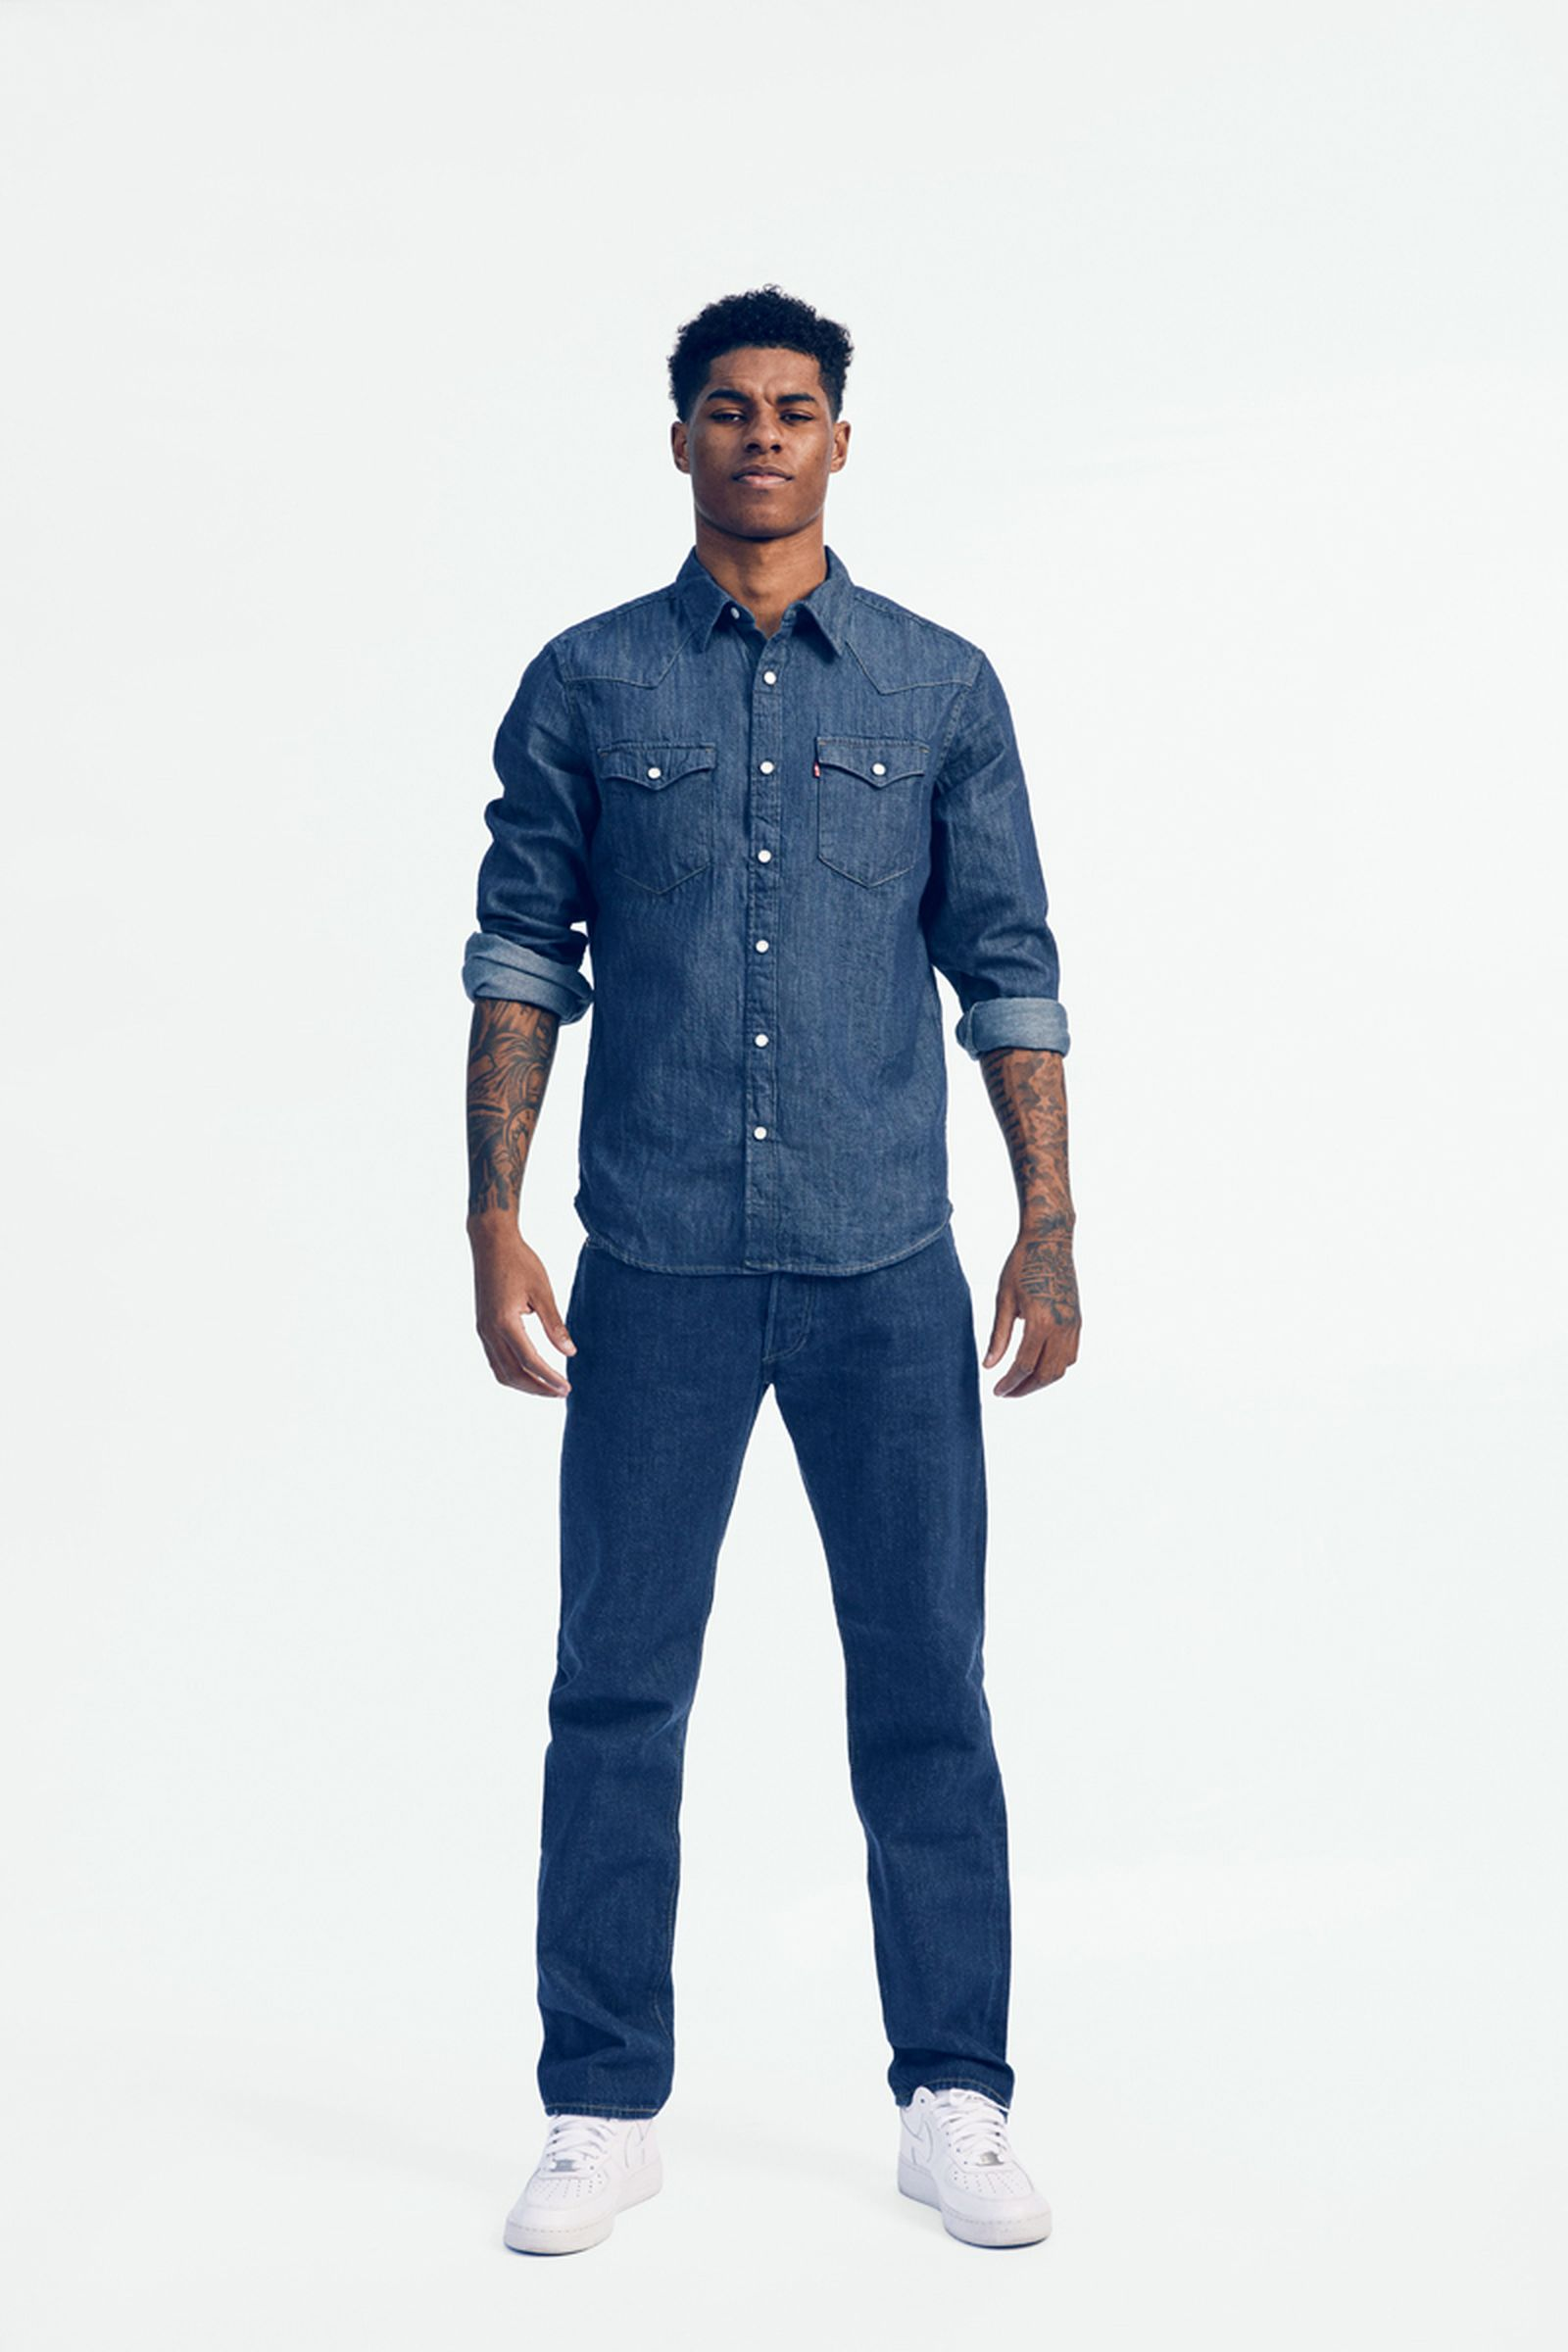 levis-501-day-2021-campaign- (7)